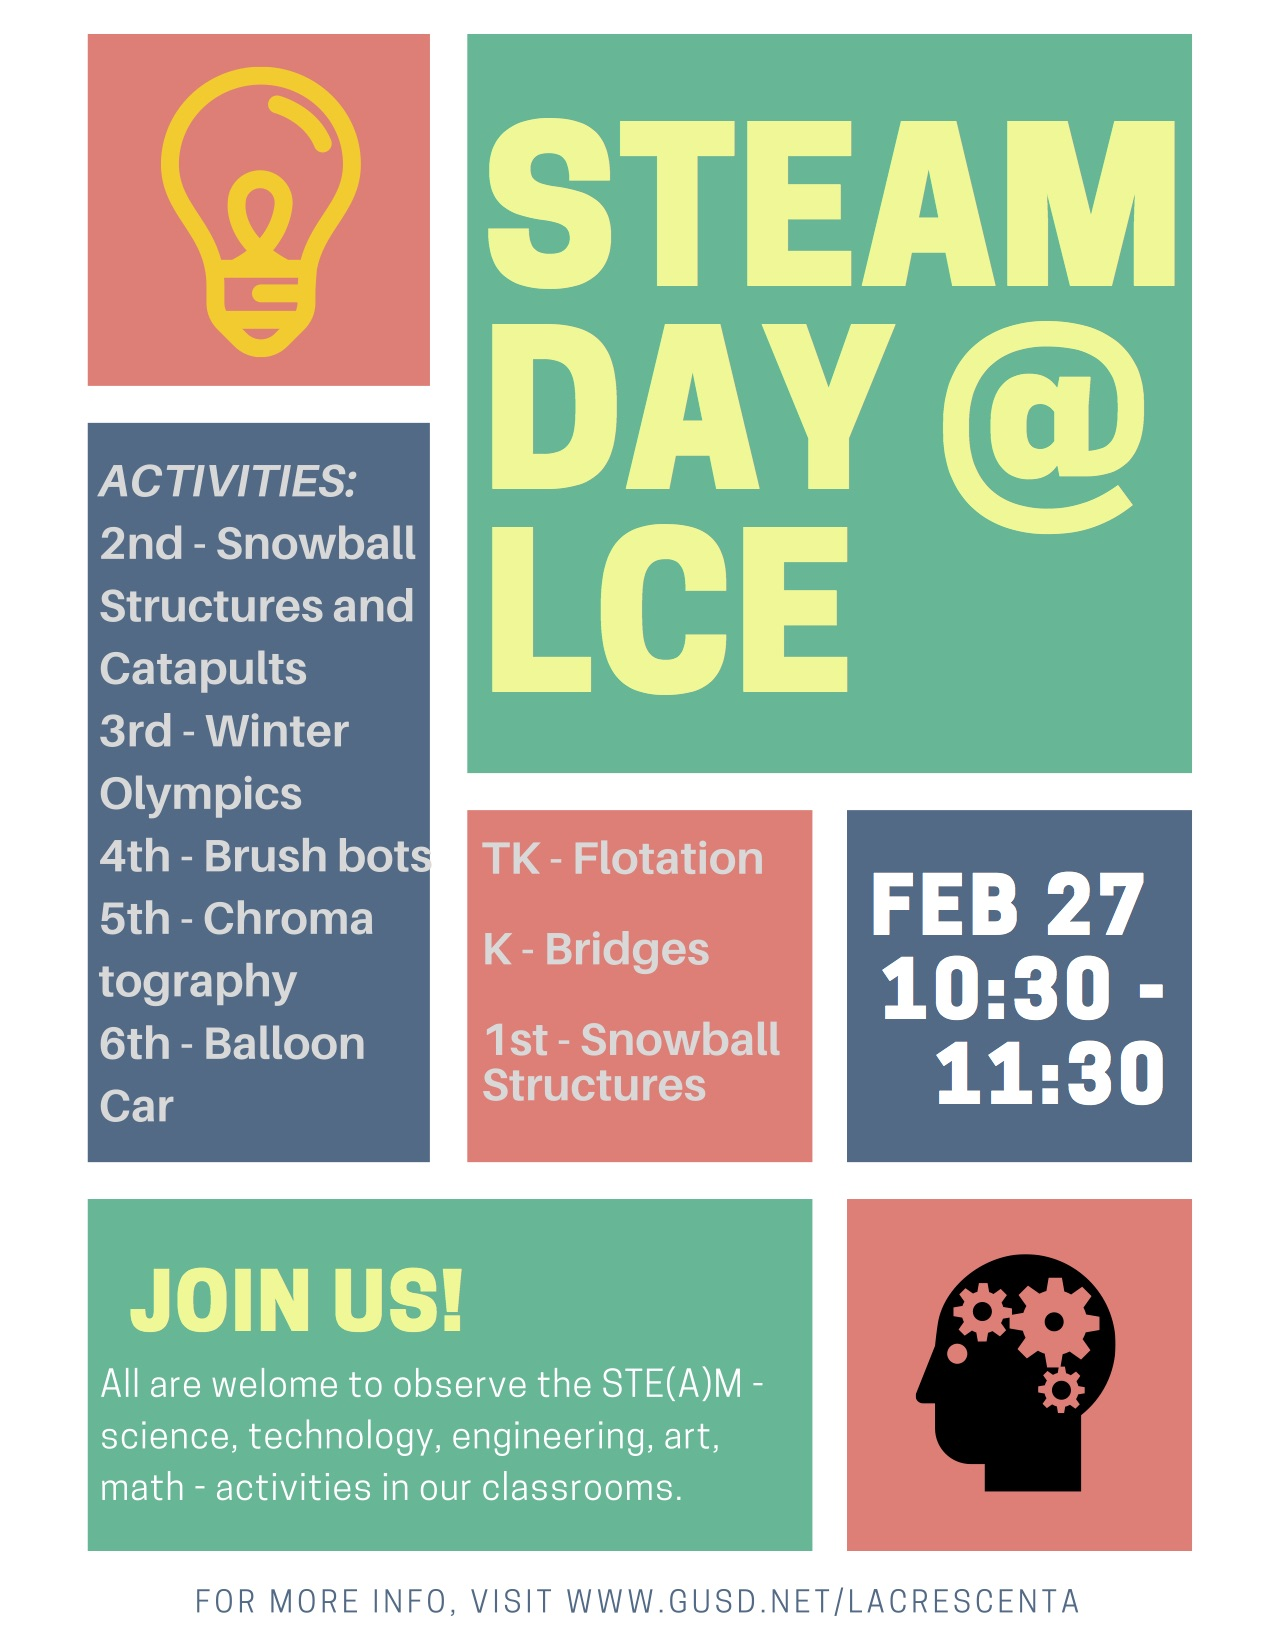 Join us for STEAM day!